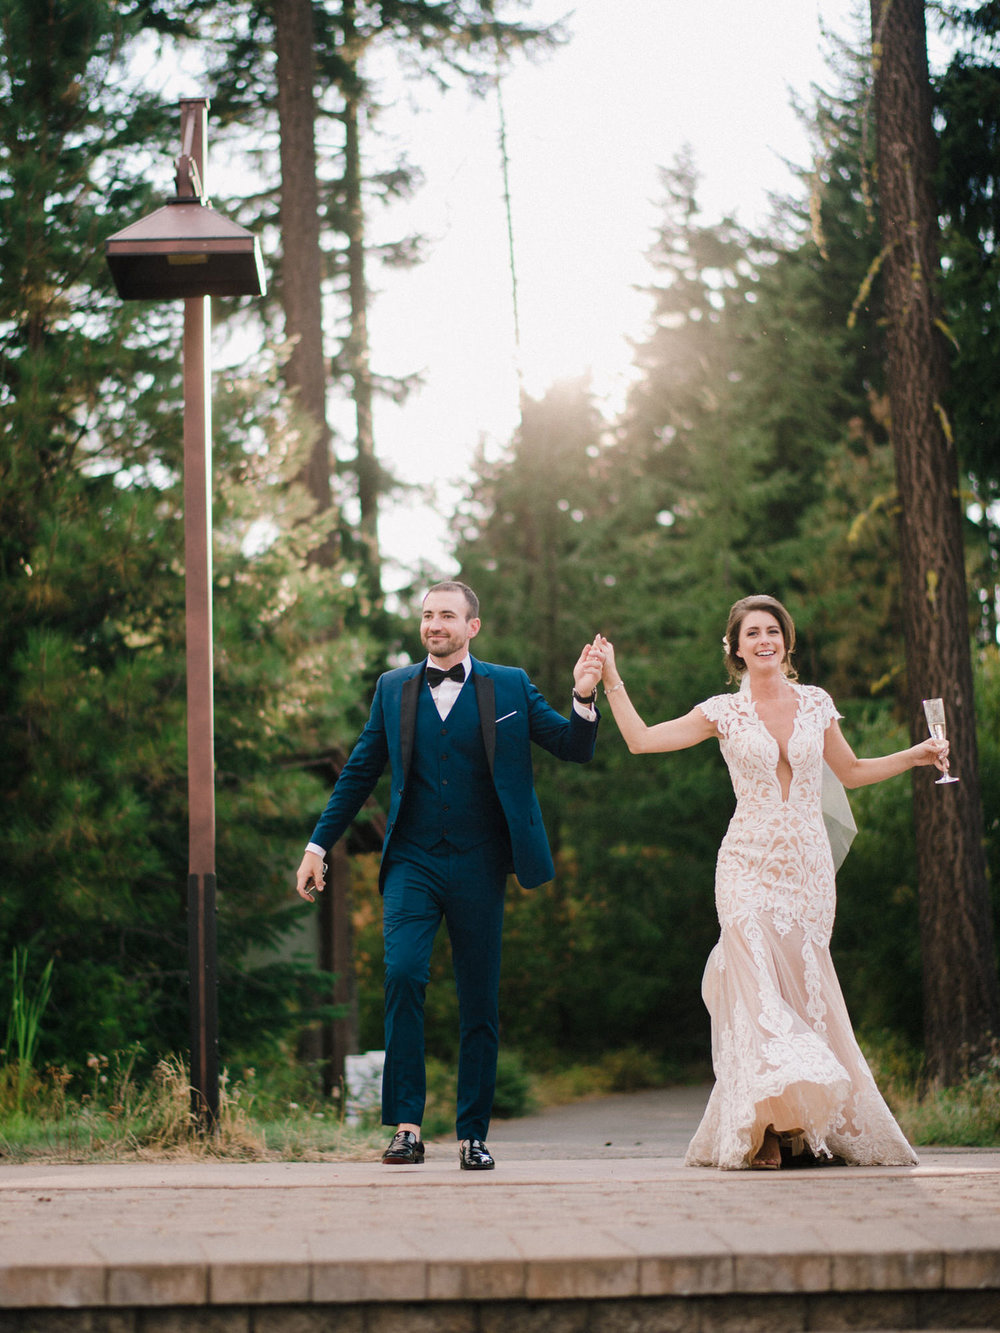 290-bright-coral-wedding-with-sinclair-and-moore-at-suncadia-resort.jpg